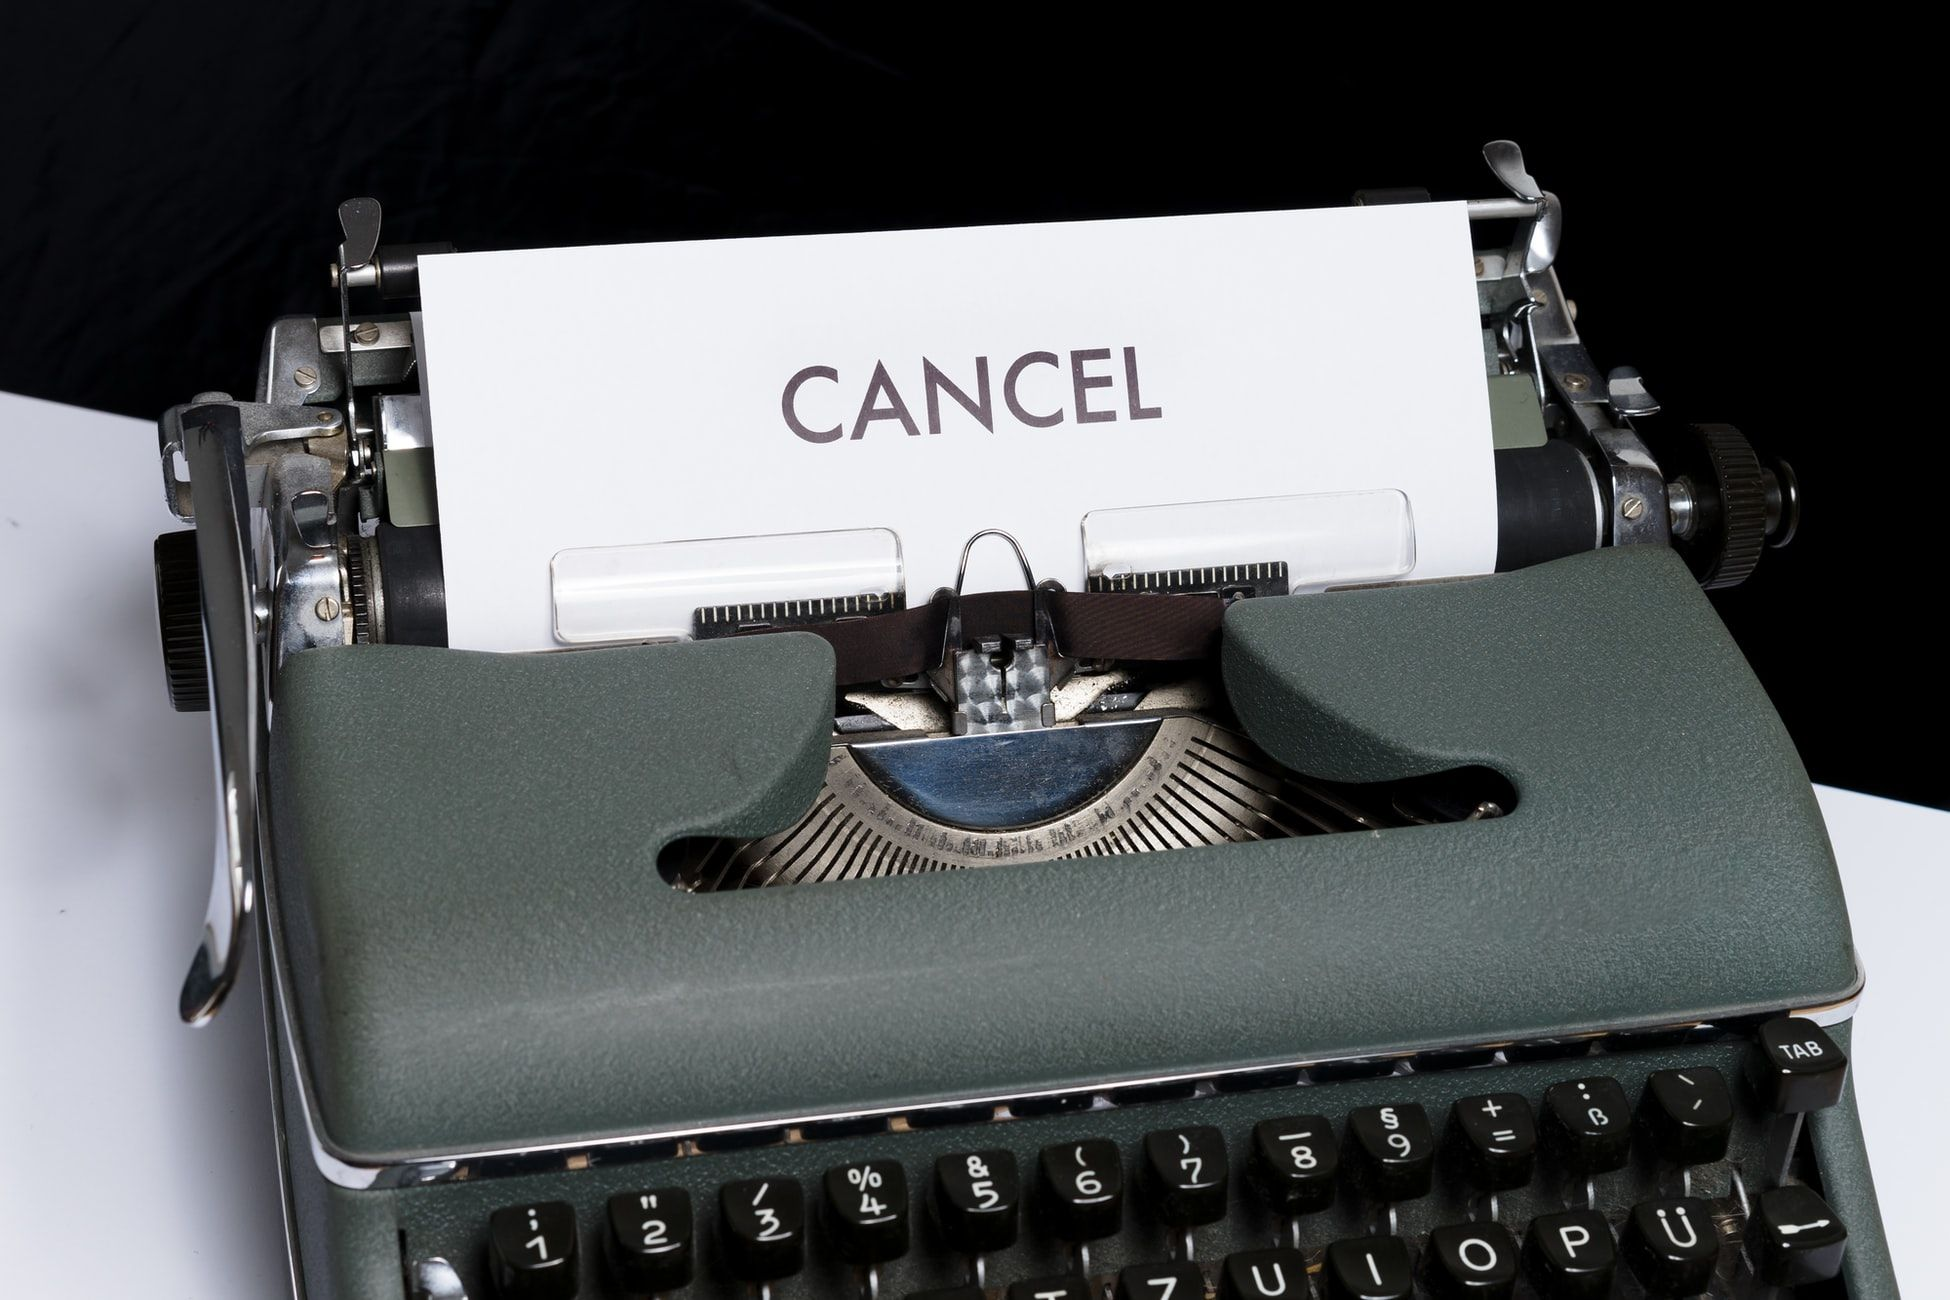 typewriter with a piece of paper in the roller saying Cancel